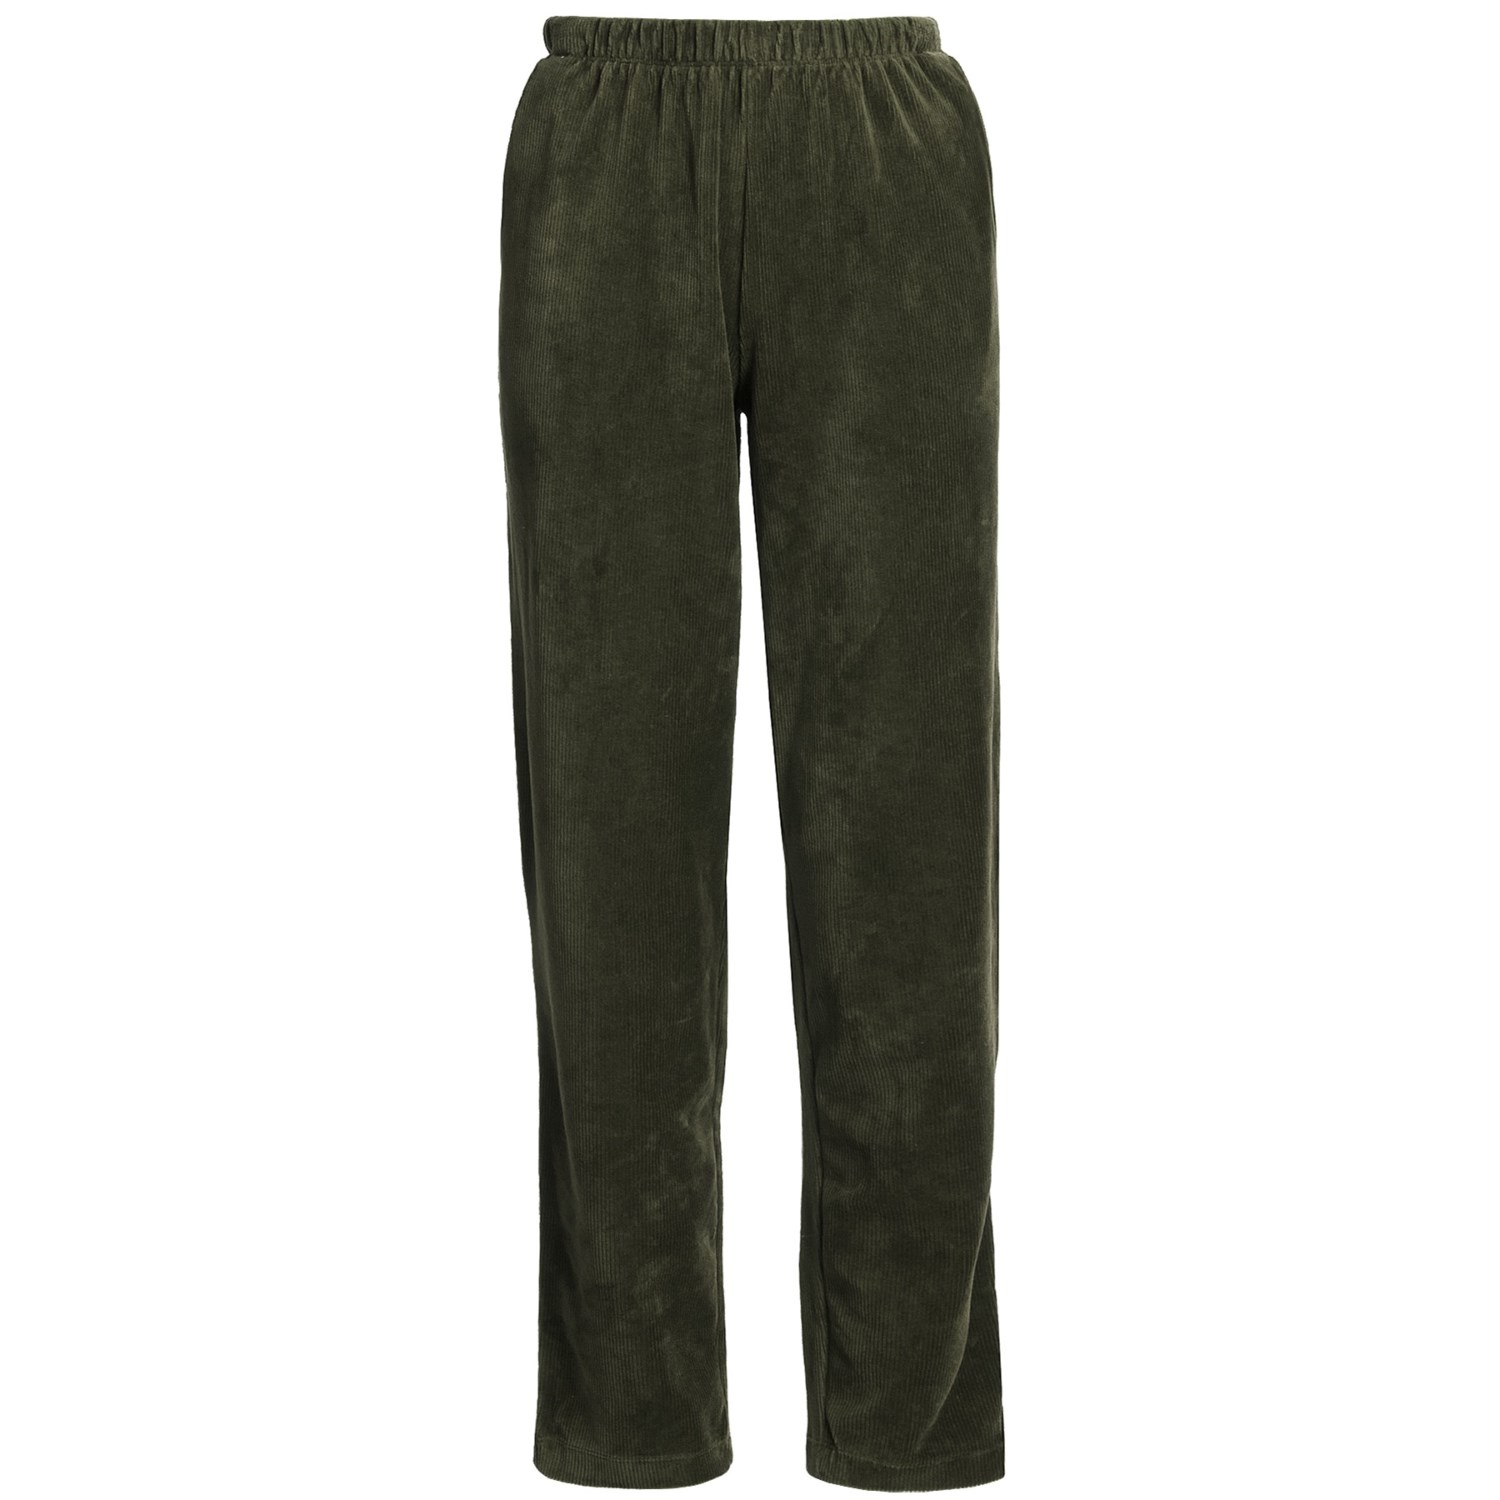 better than sweatpants - Review of Sport Knit Corduroy Pants ...